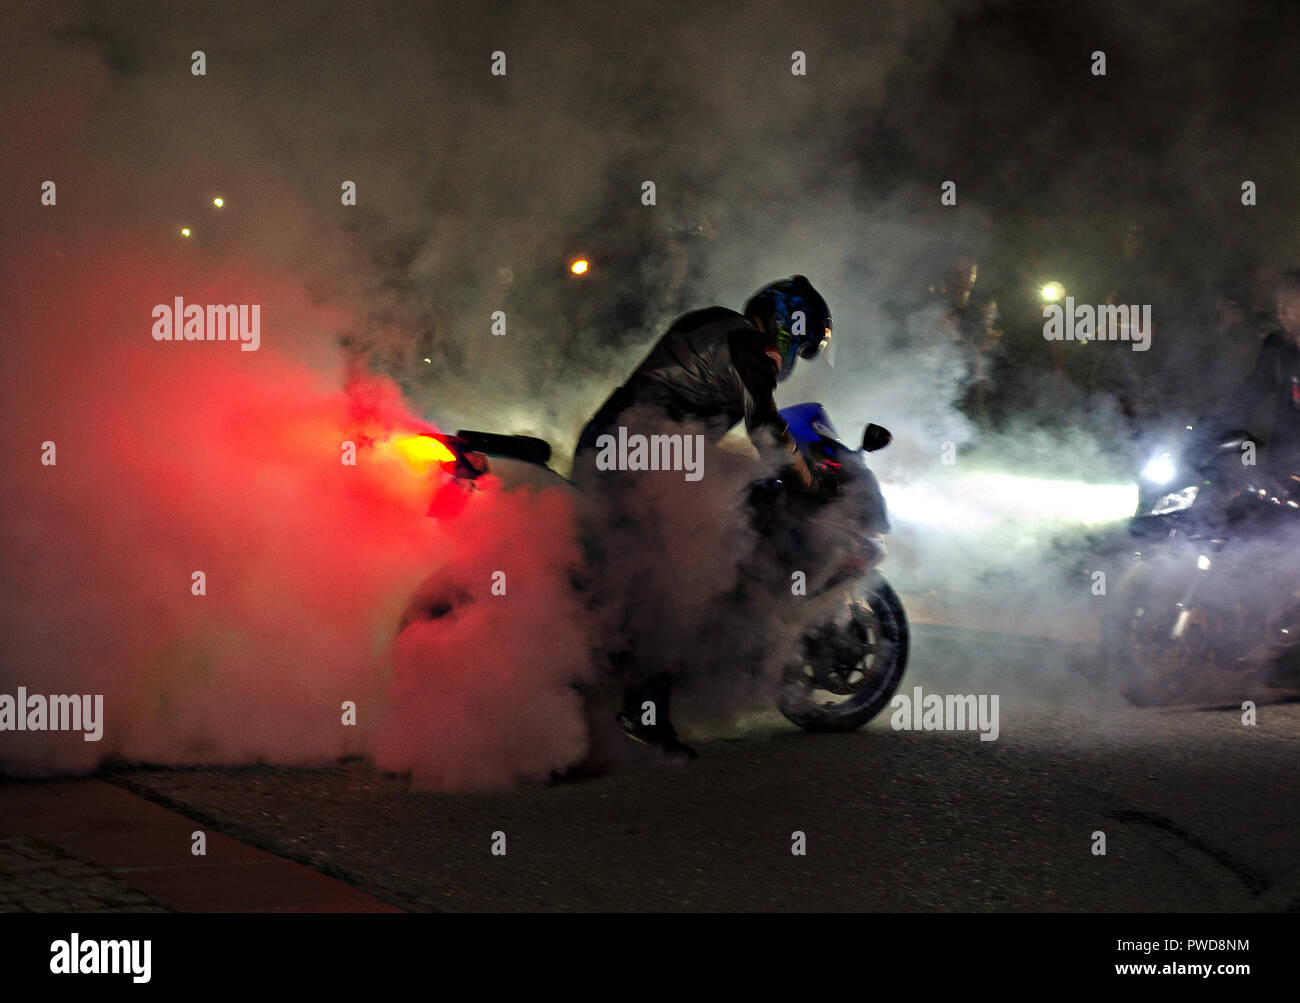 А spectacular nightly moto show with lots of smoke and a tire of tires. Many adrenalin. Red and white lighting. - Stock Image